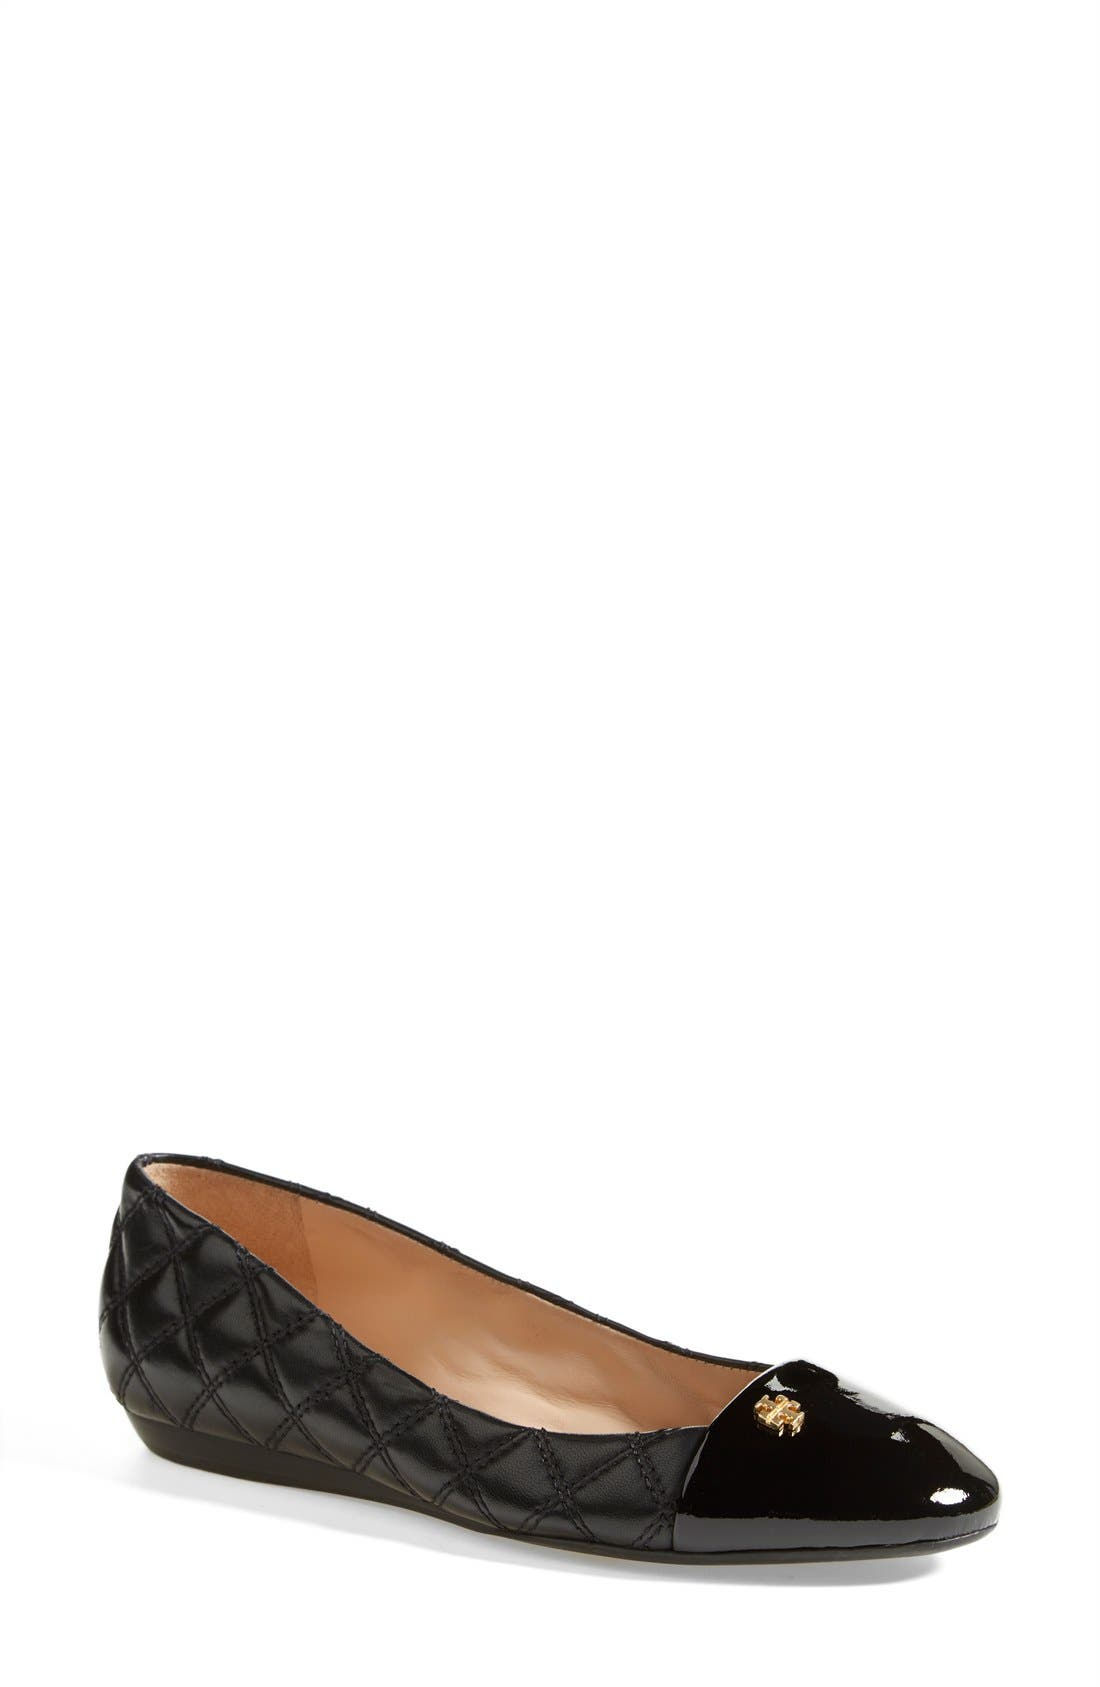 Main Image - Tory Burch 'Claremont' Quilted Flat (Women)